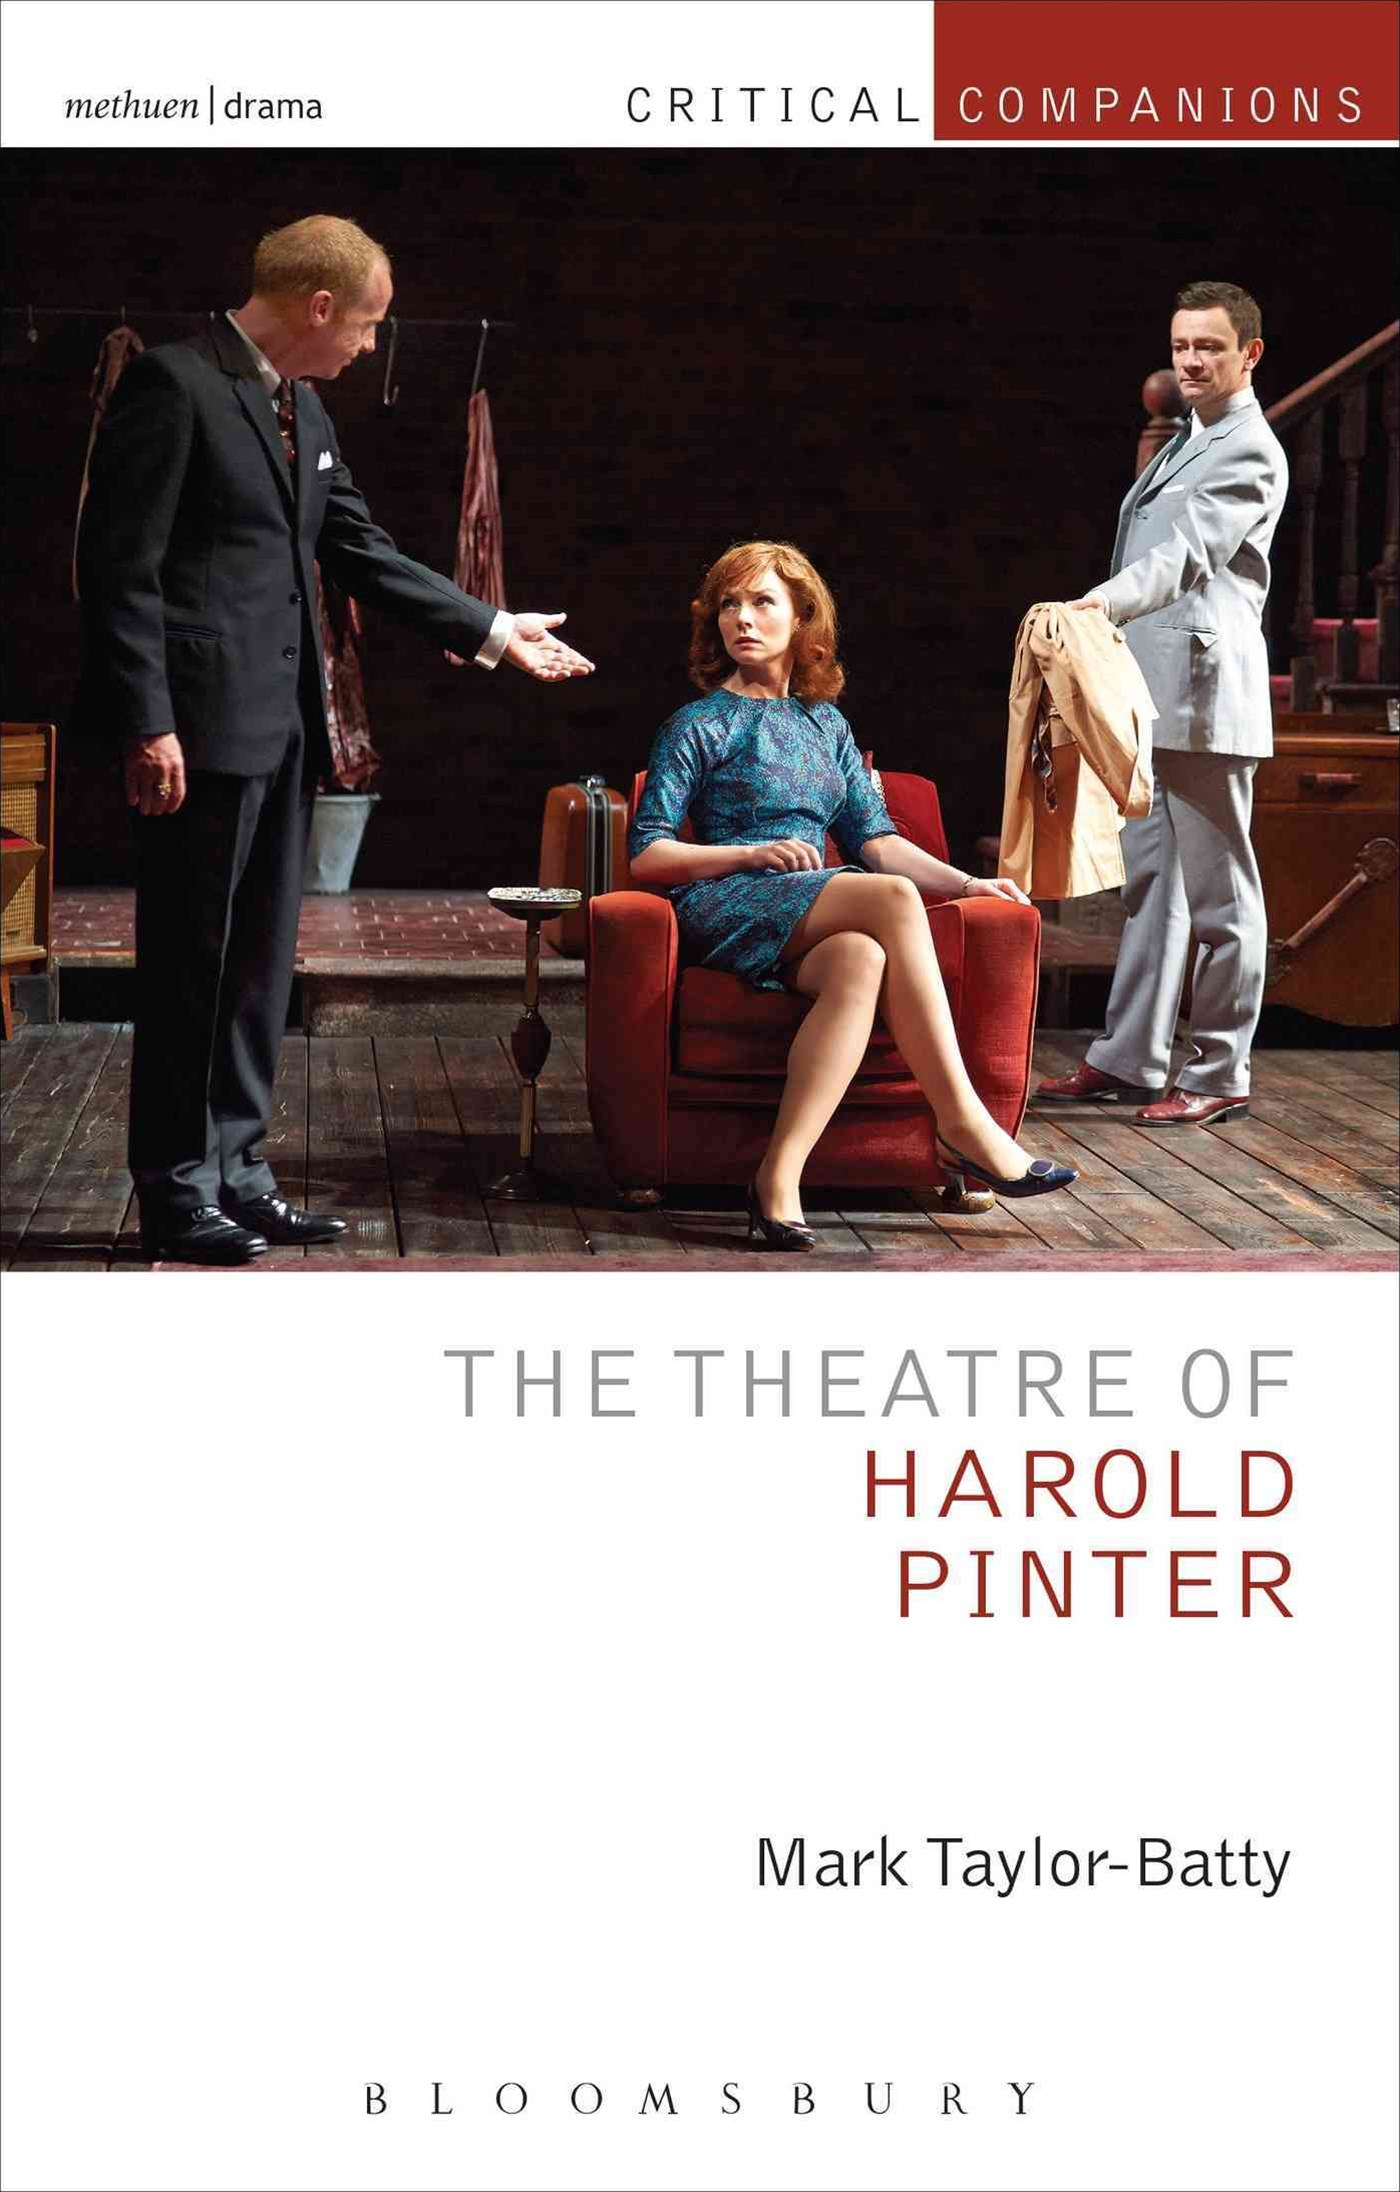 The Theatre of Harold Pinter